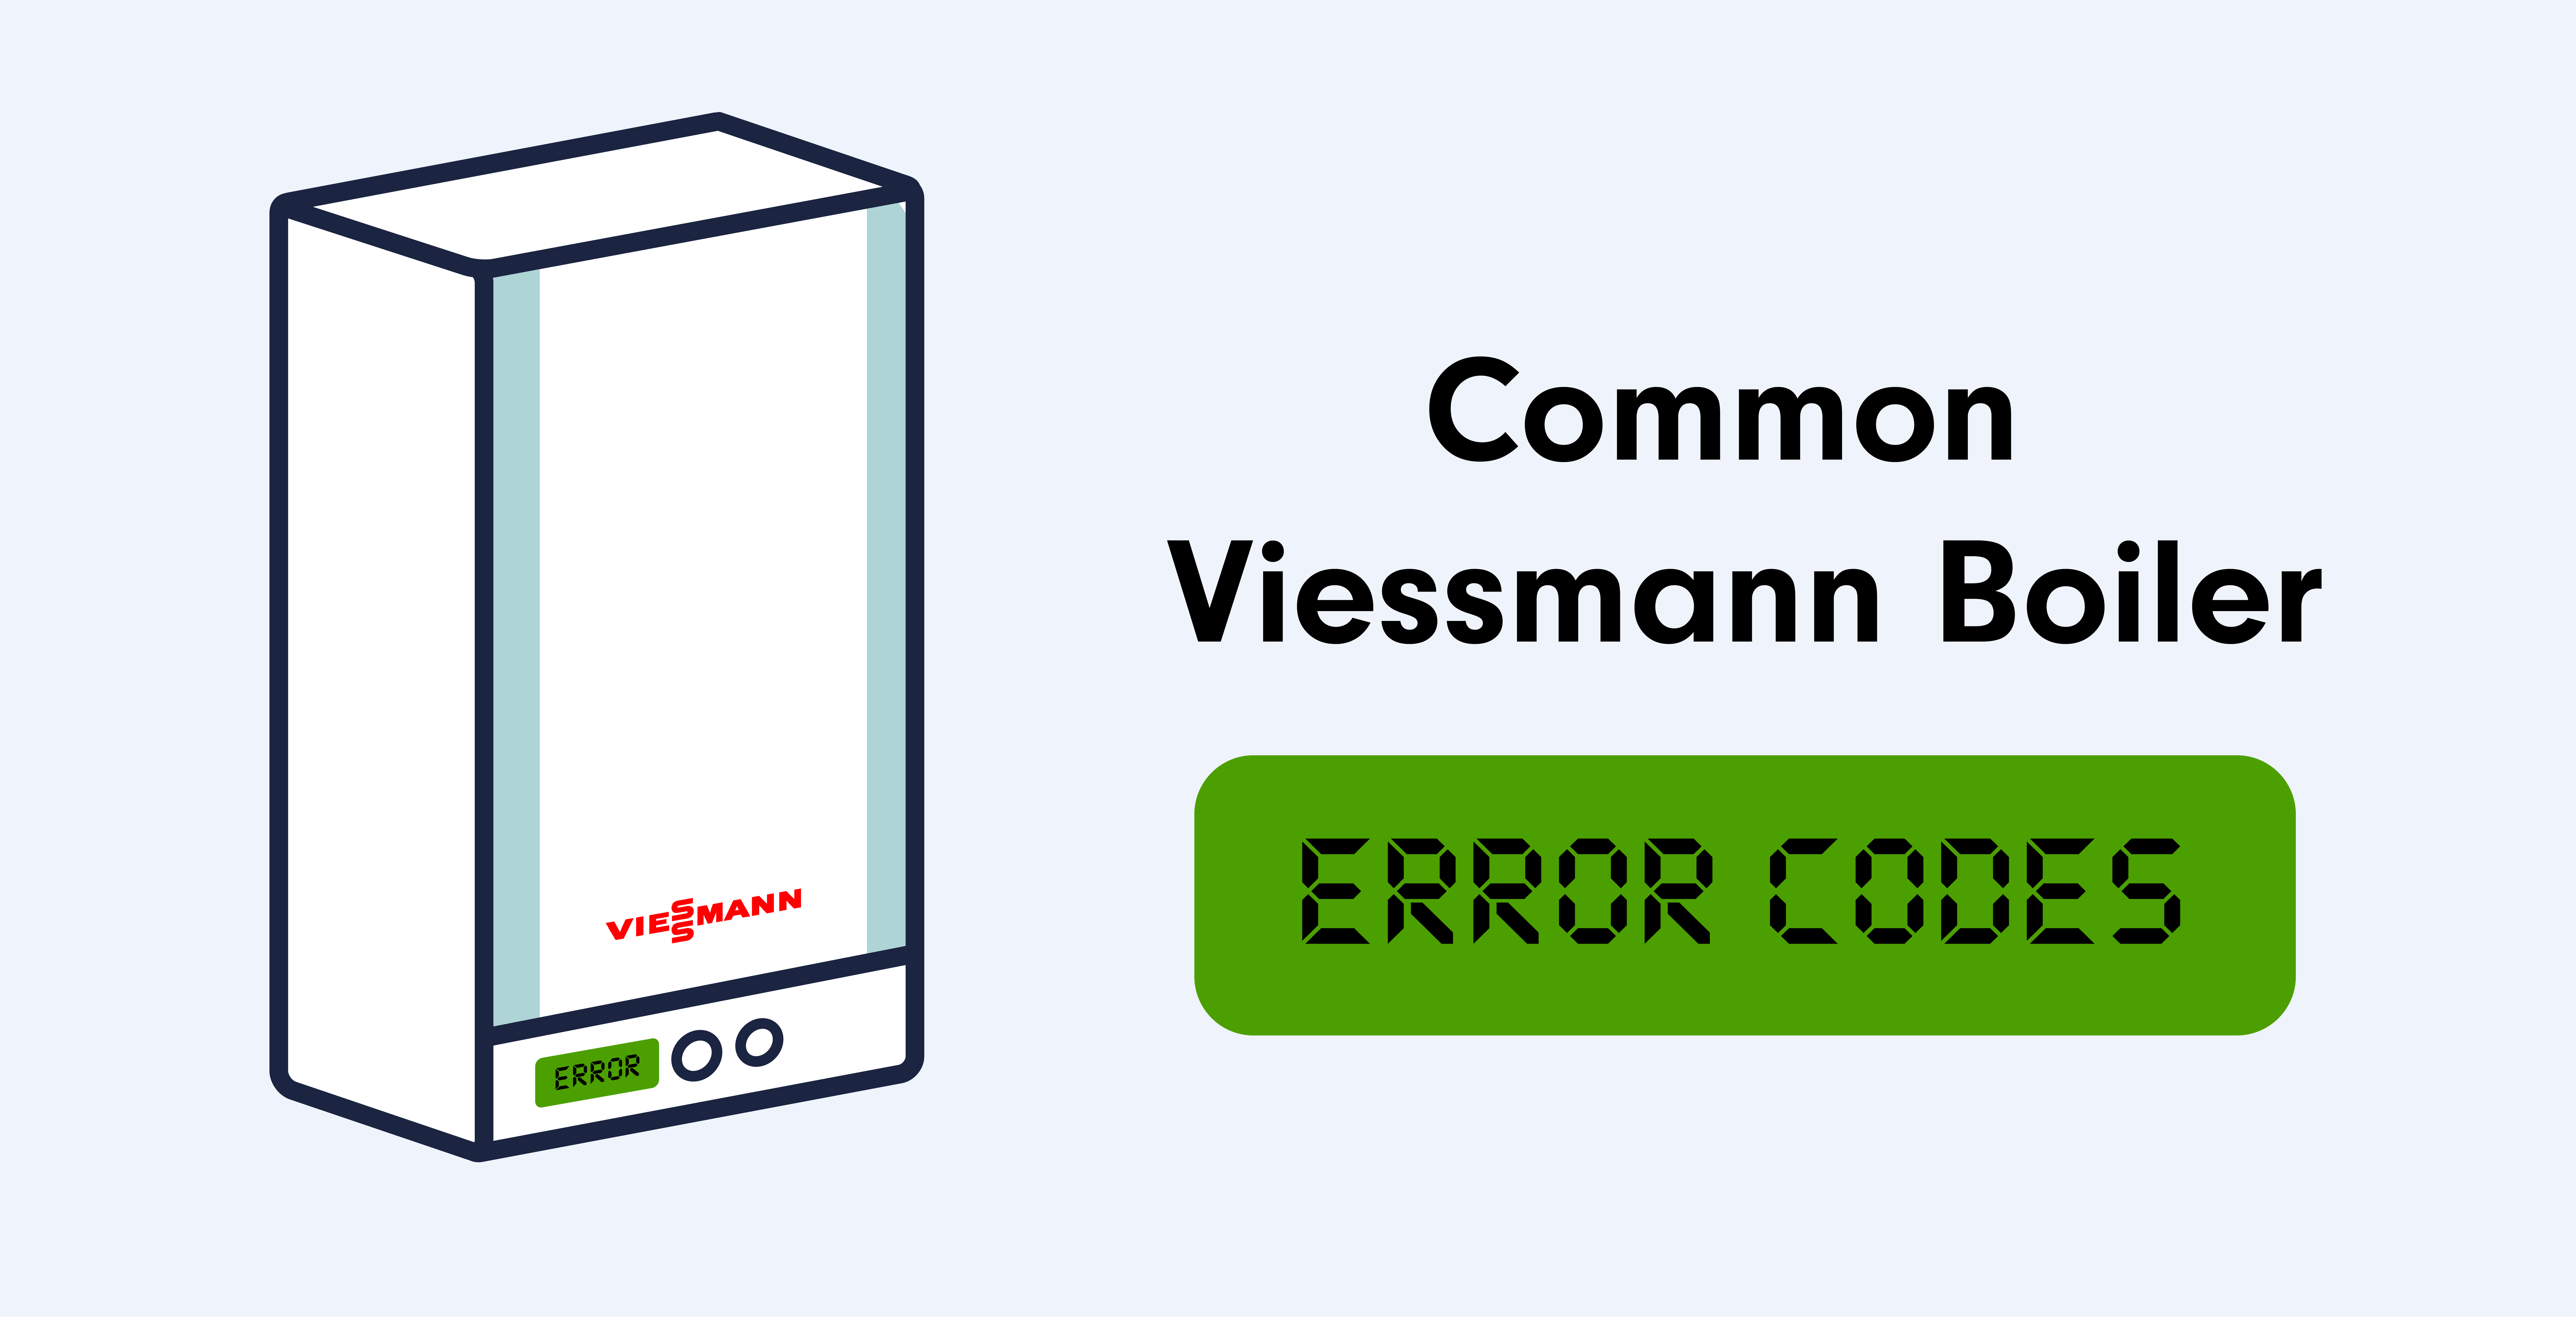 Common Viessmann Boiler Error Codes